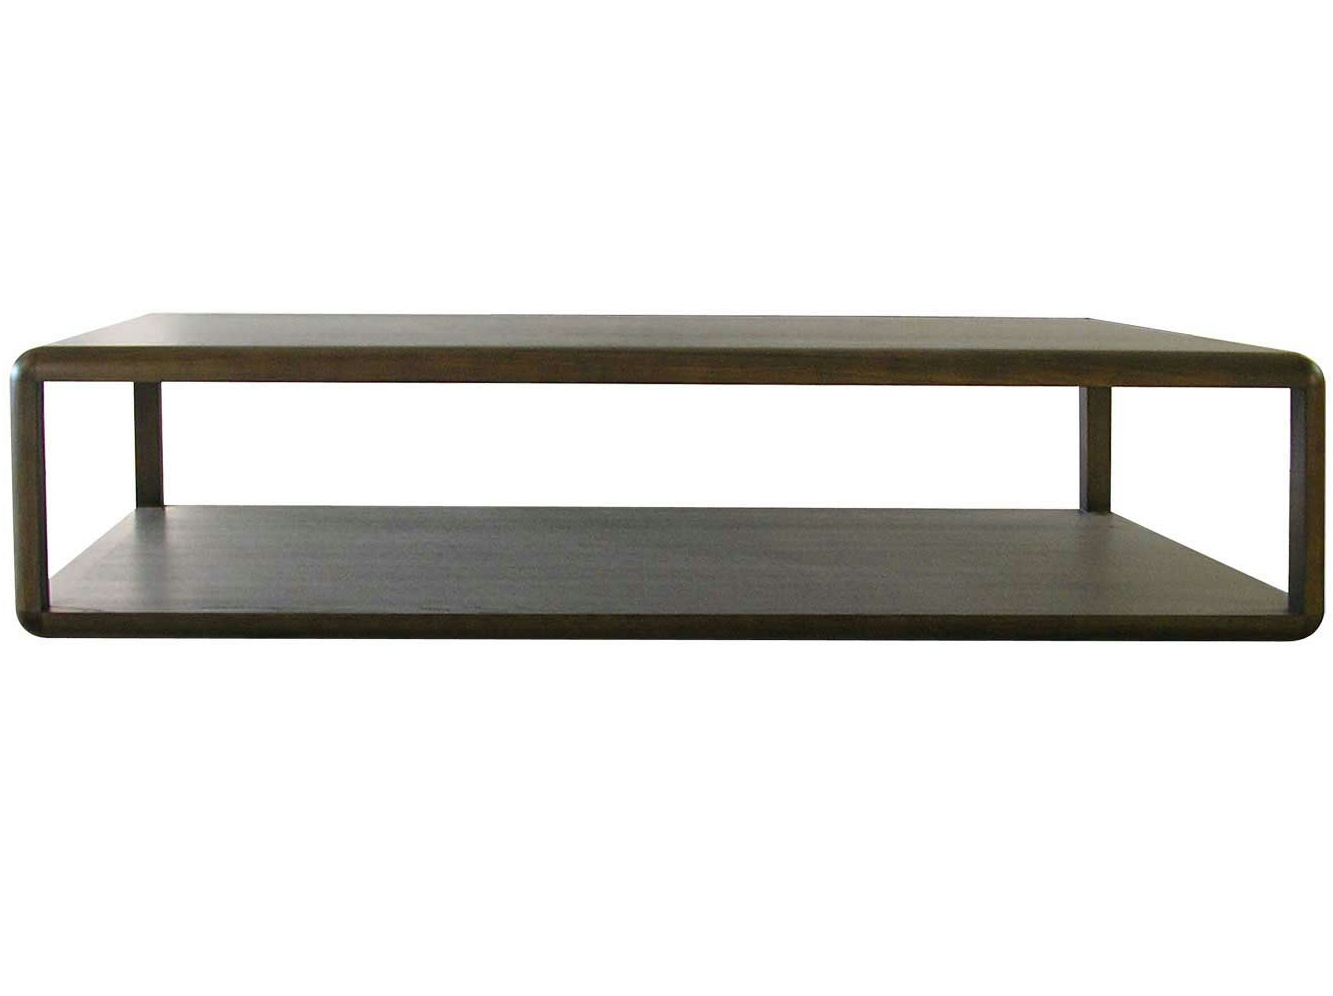 rive droite table basse by roche bobois design christophe. Black Bedroom Furniture Sets. Home Design Ideas